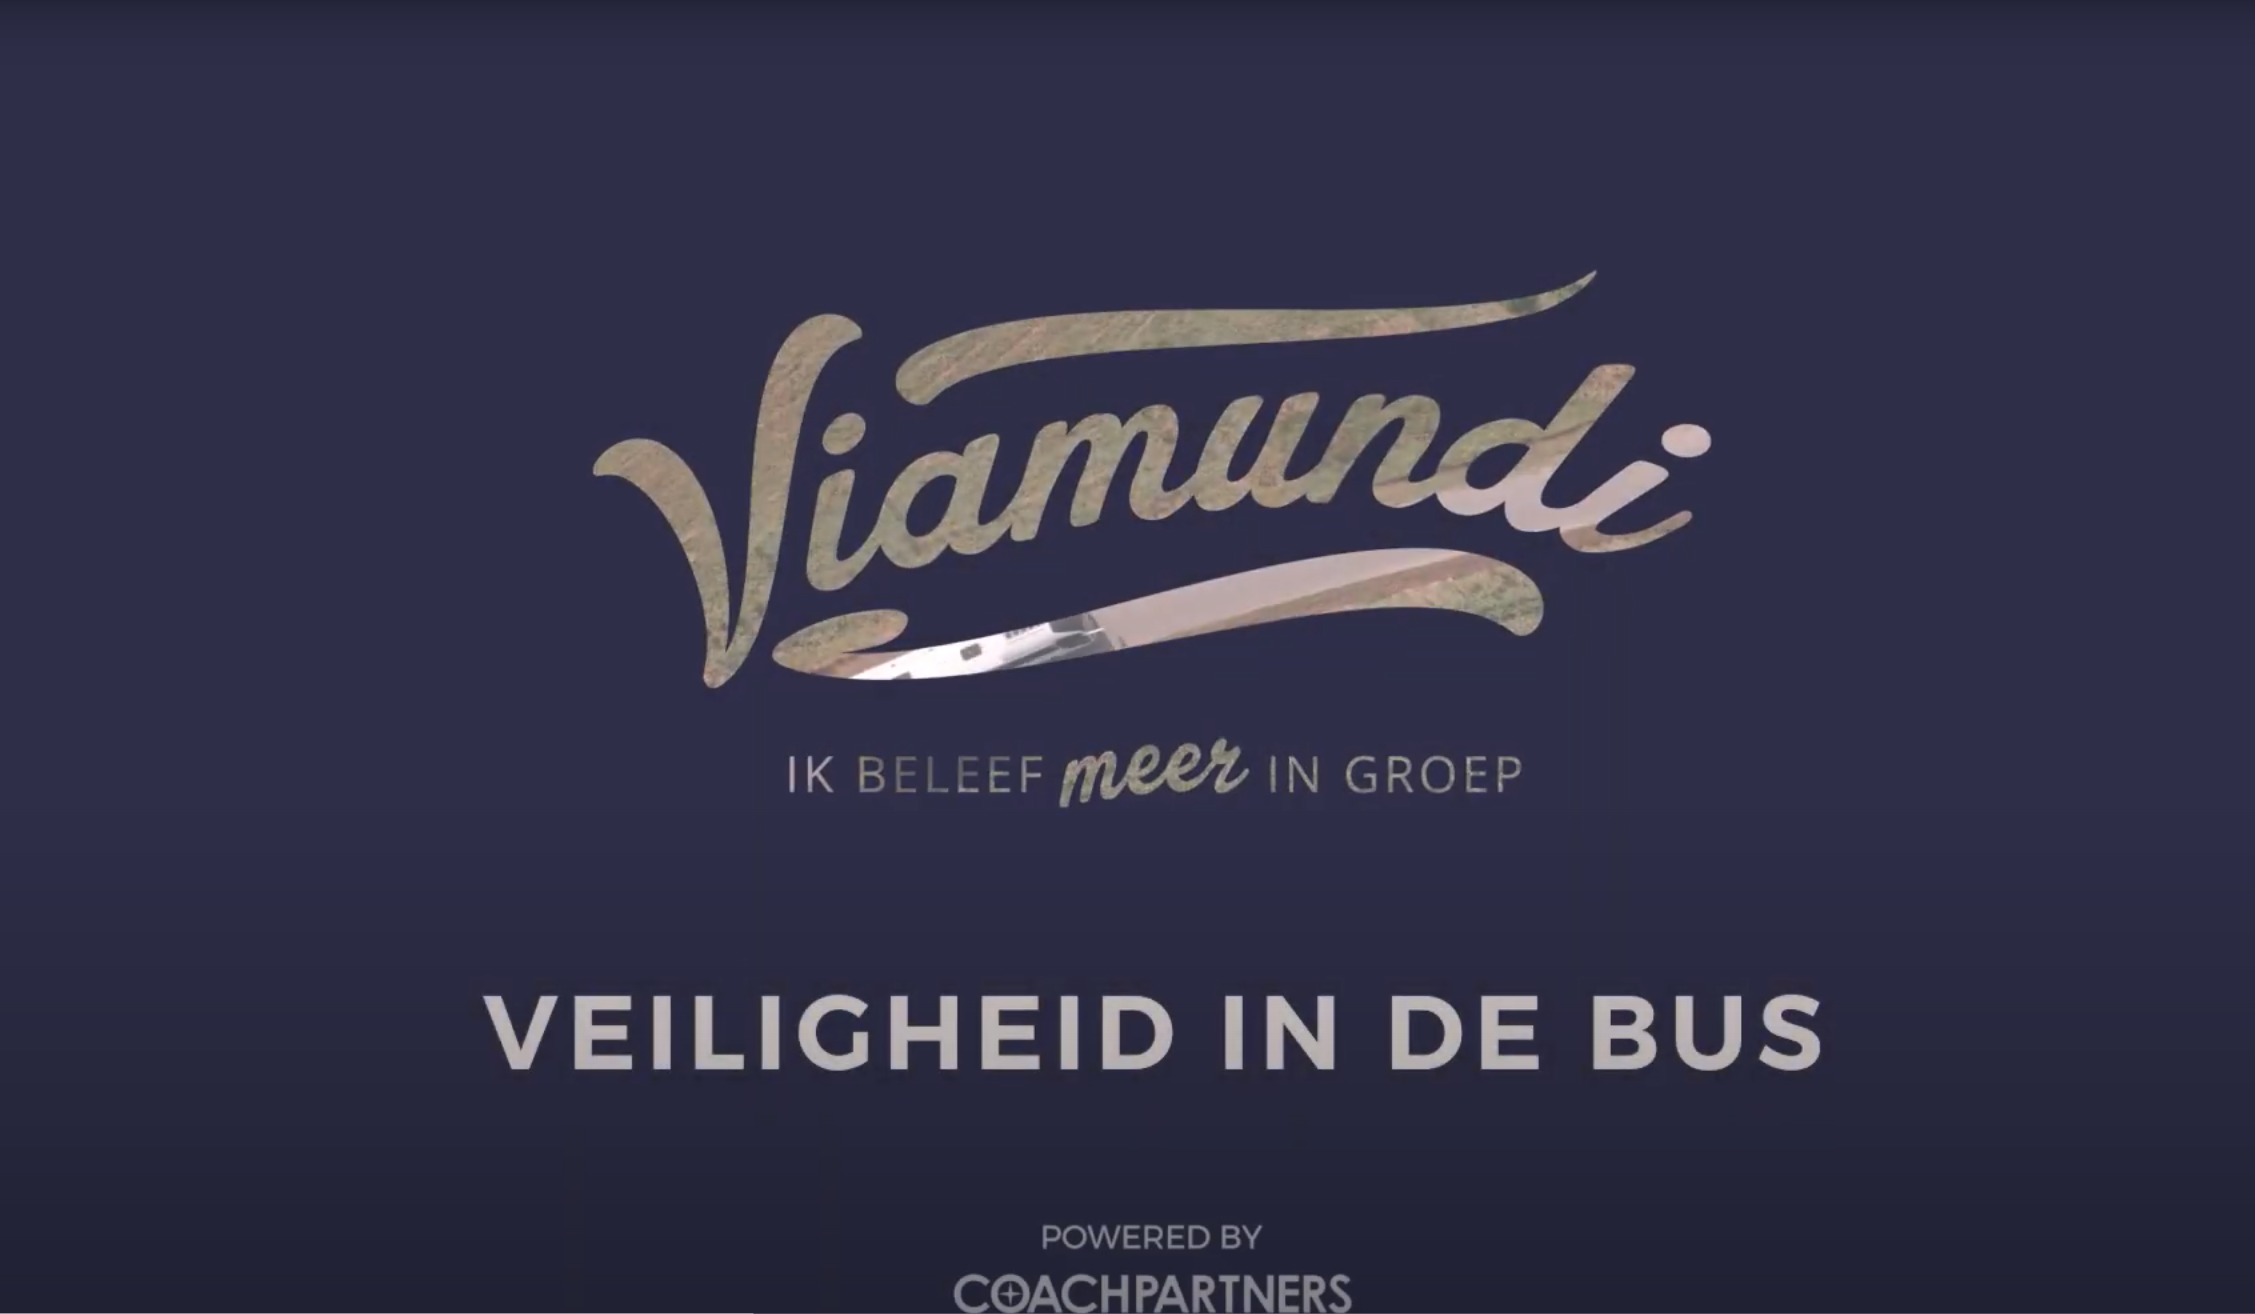 Viamundi safety on the bus. Powered by Coach Partners.